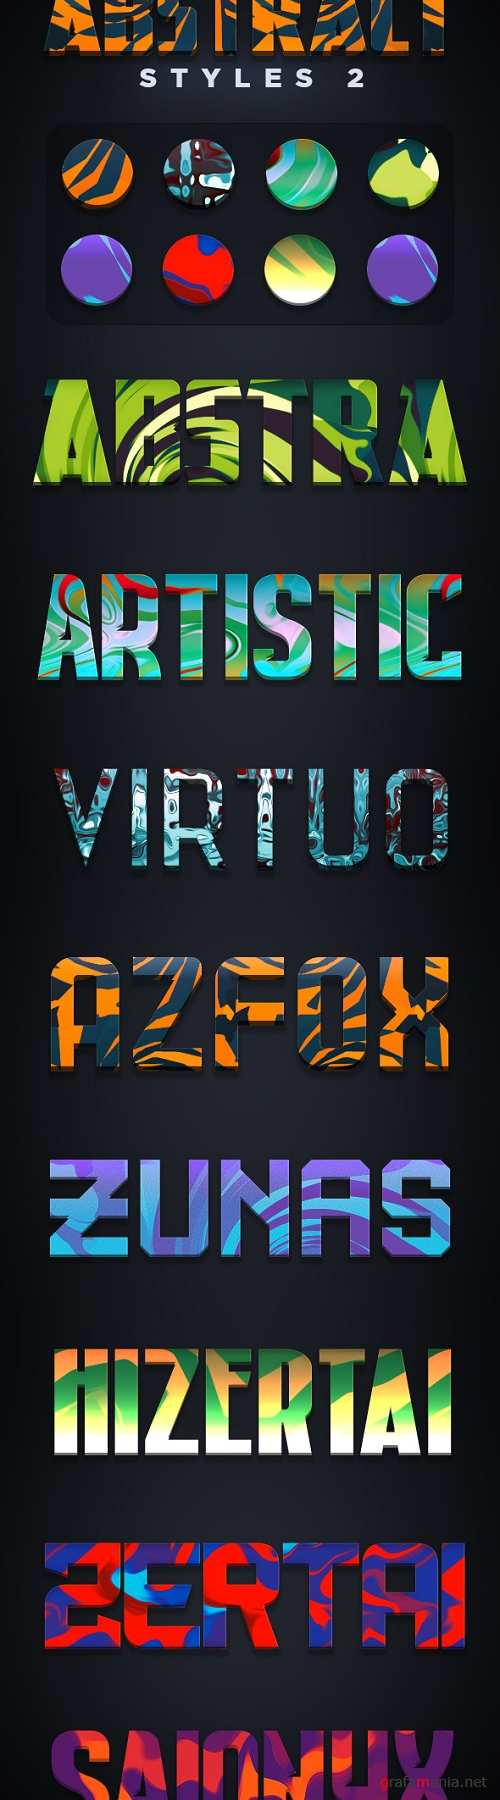 Abstract Photoshop Styles 2 - 18591422